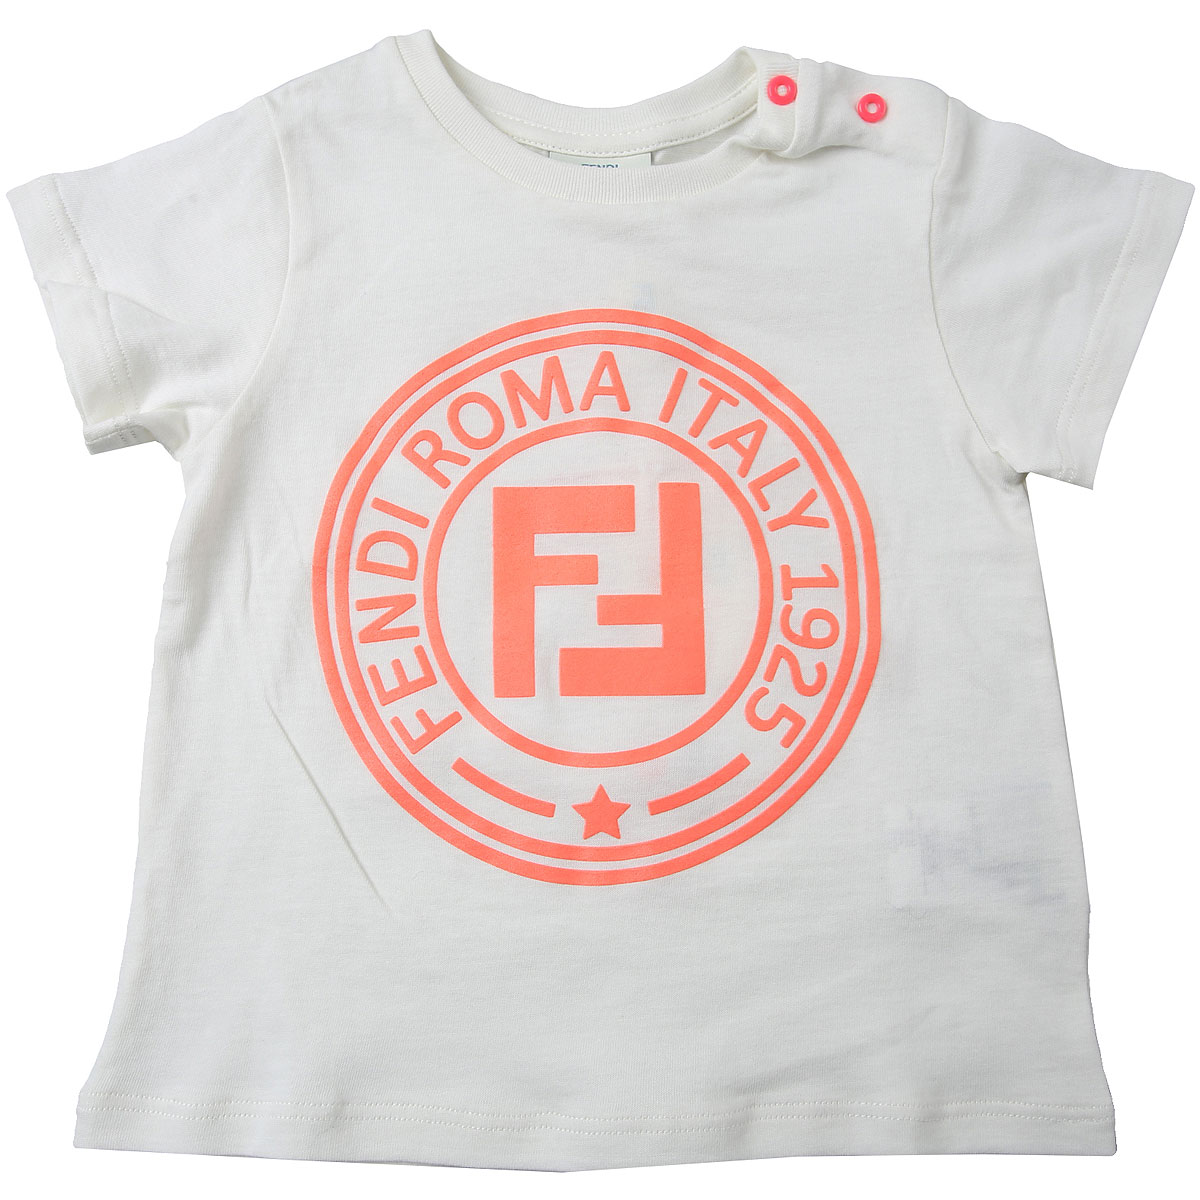 Fendi Baby T-Shirt for Girls On Sale, White, Cotton, 2019, 12M 18M 2Y 6M 9M